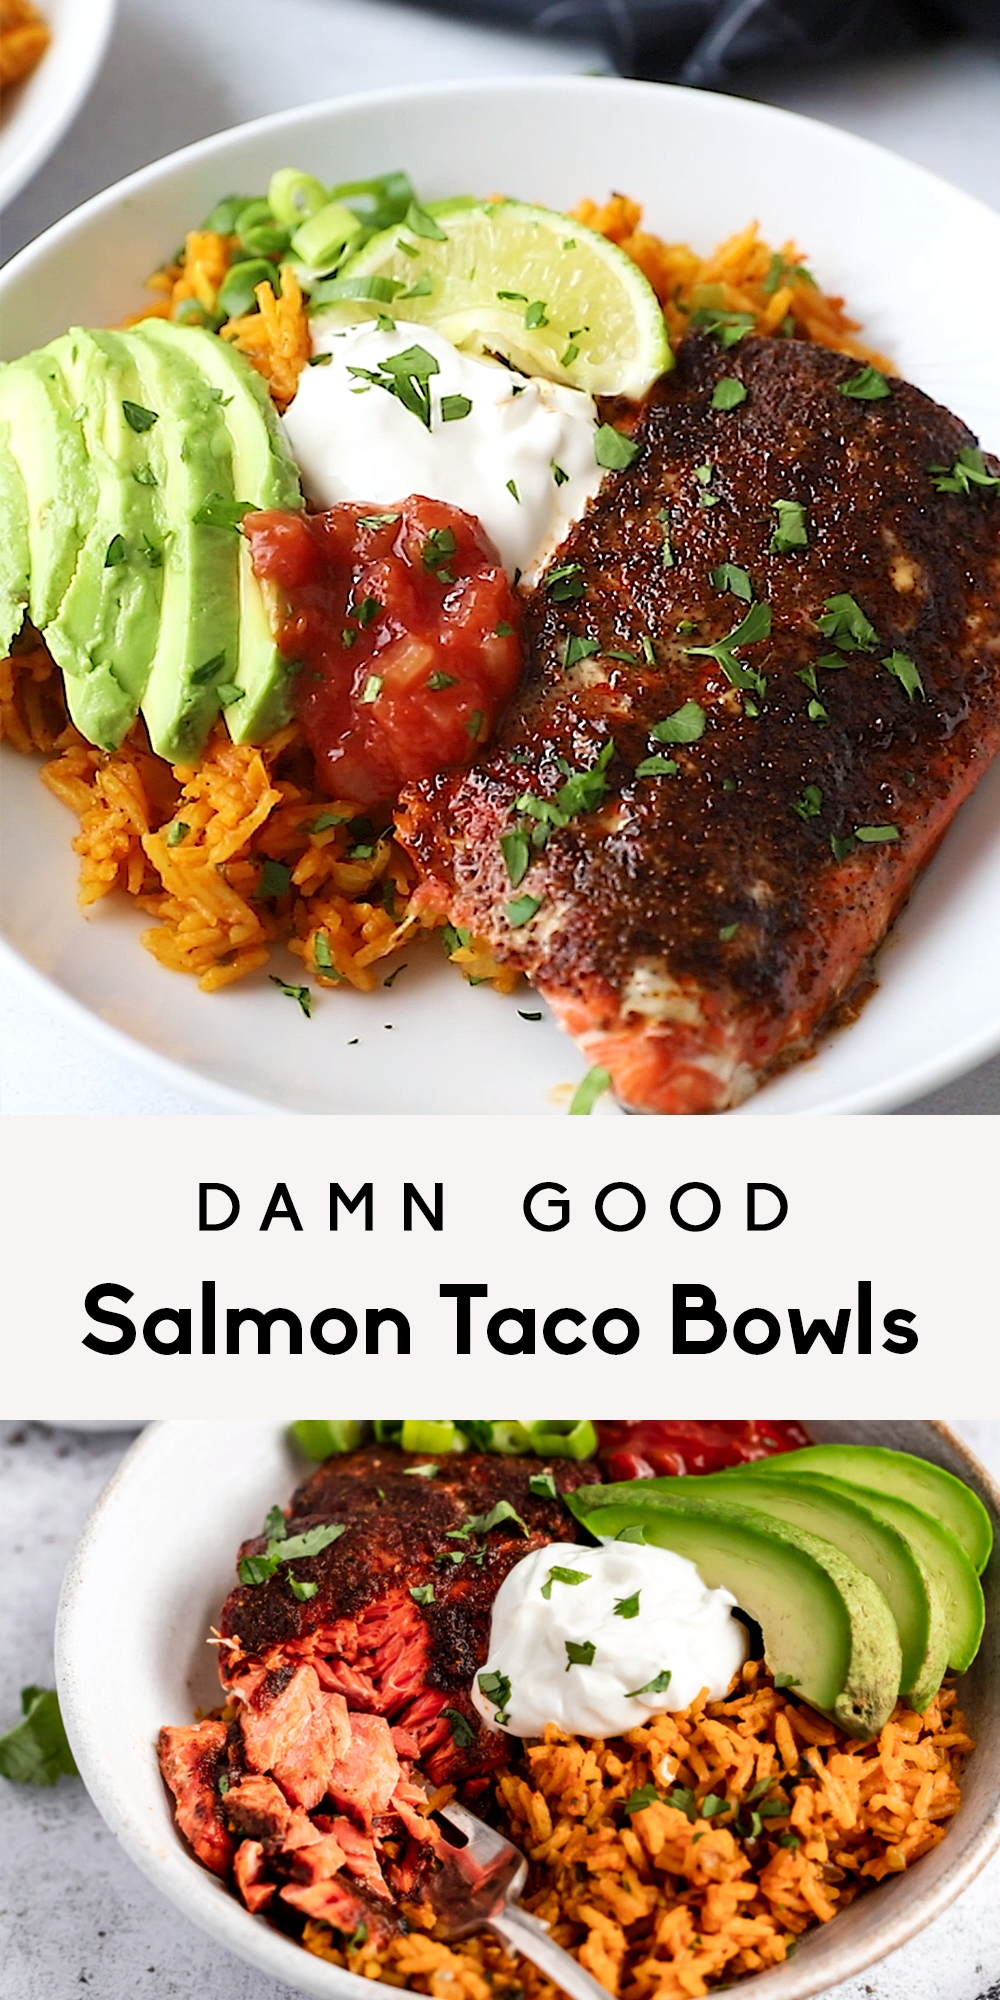 Delicious salmon taco bowls with homemade taco seasoned salmon and served with flavorful sofrito rice. Add avocado, salsa, green onion, cilantro and any other toppings your heart desires for a wonderful meal prep dinner for two! #salmon #tacobowls #tacos #seafood #fish #sofrito #mealprep #dinner #glutenfree #healthydinner